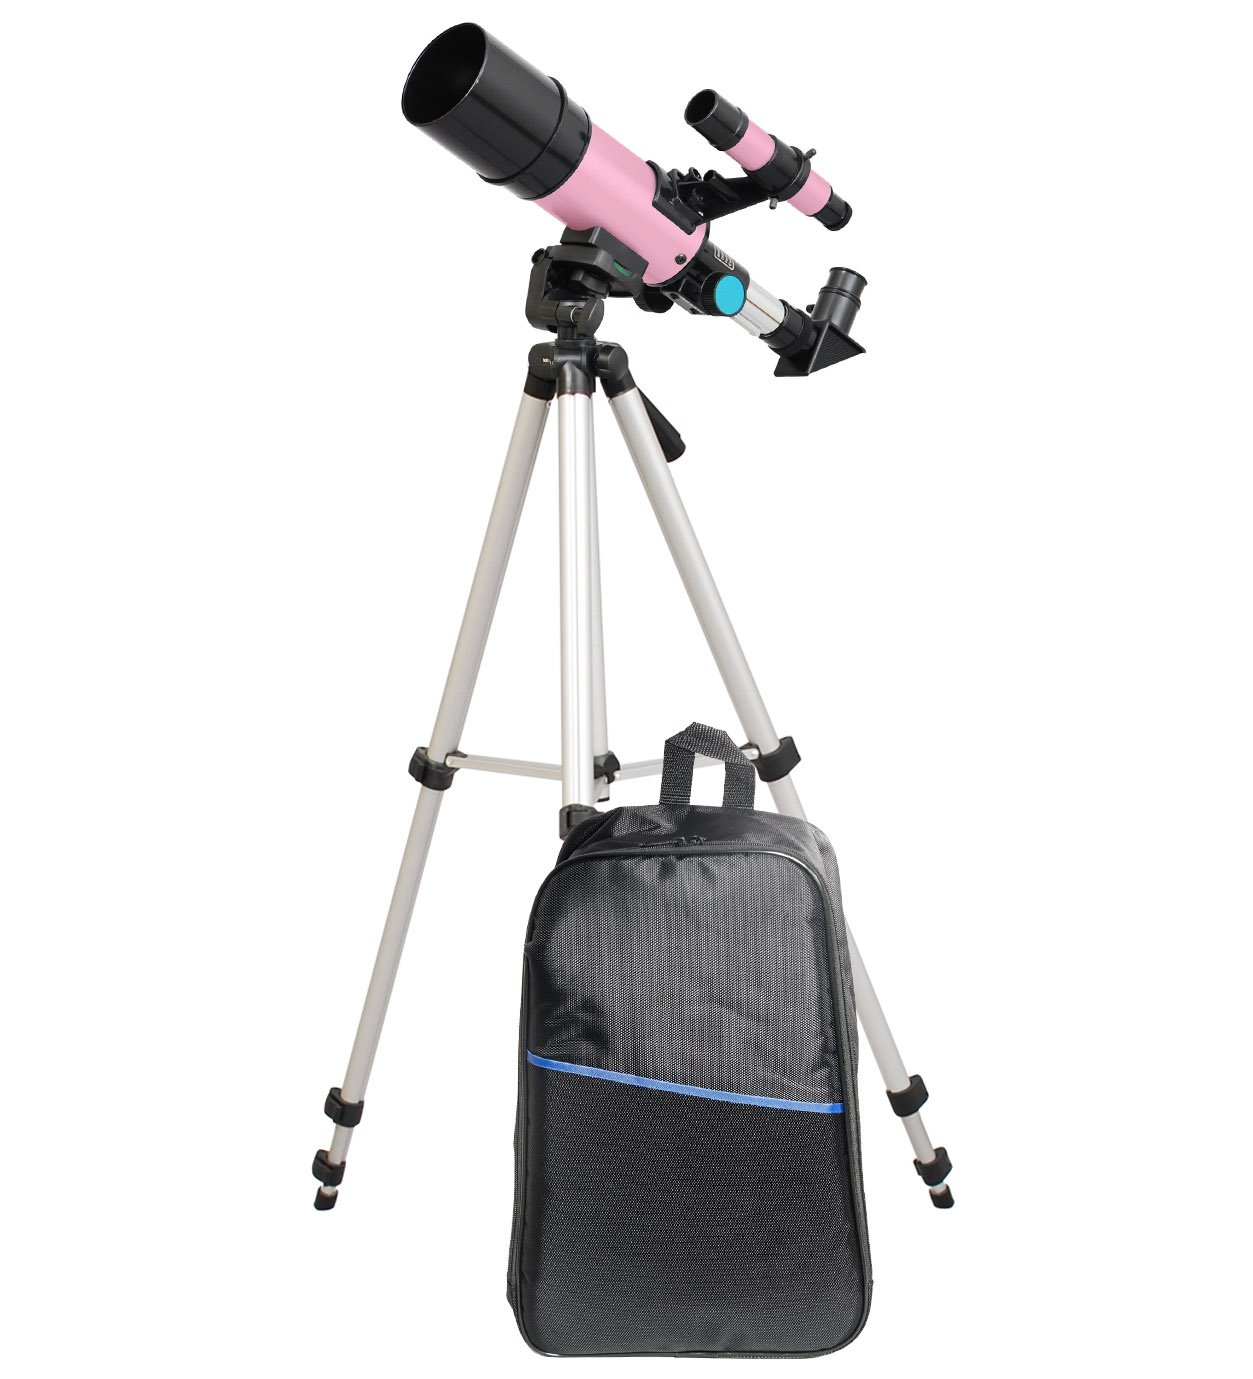 TwinStar 60mm Refractor Telescope 300mm Focal Length   15x and 50x Magnification Eye Pieces Included   Easy, Light Weight and Includes Aluminum Tripod   Great for Kids by Twin Star